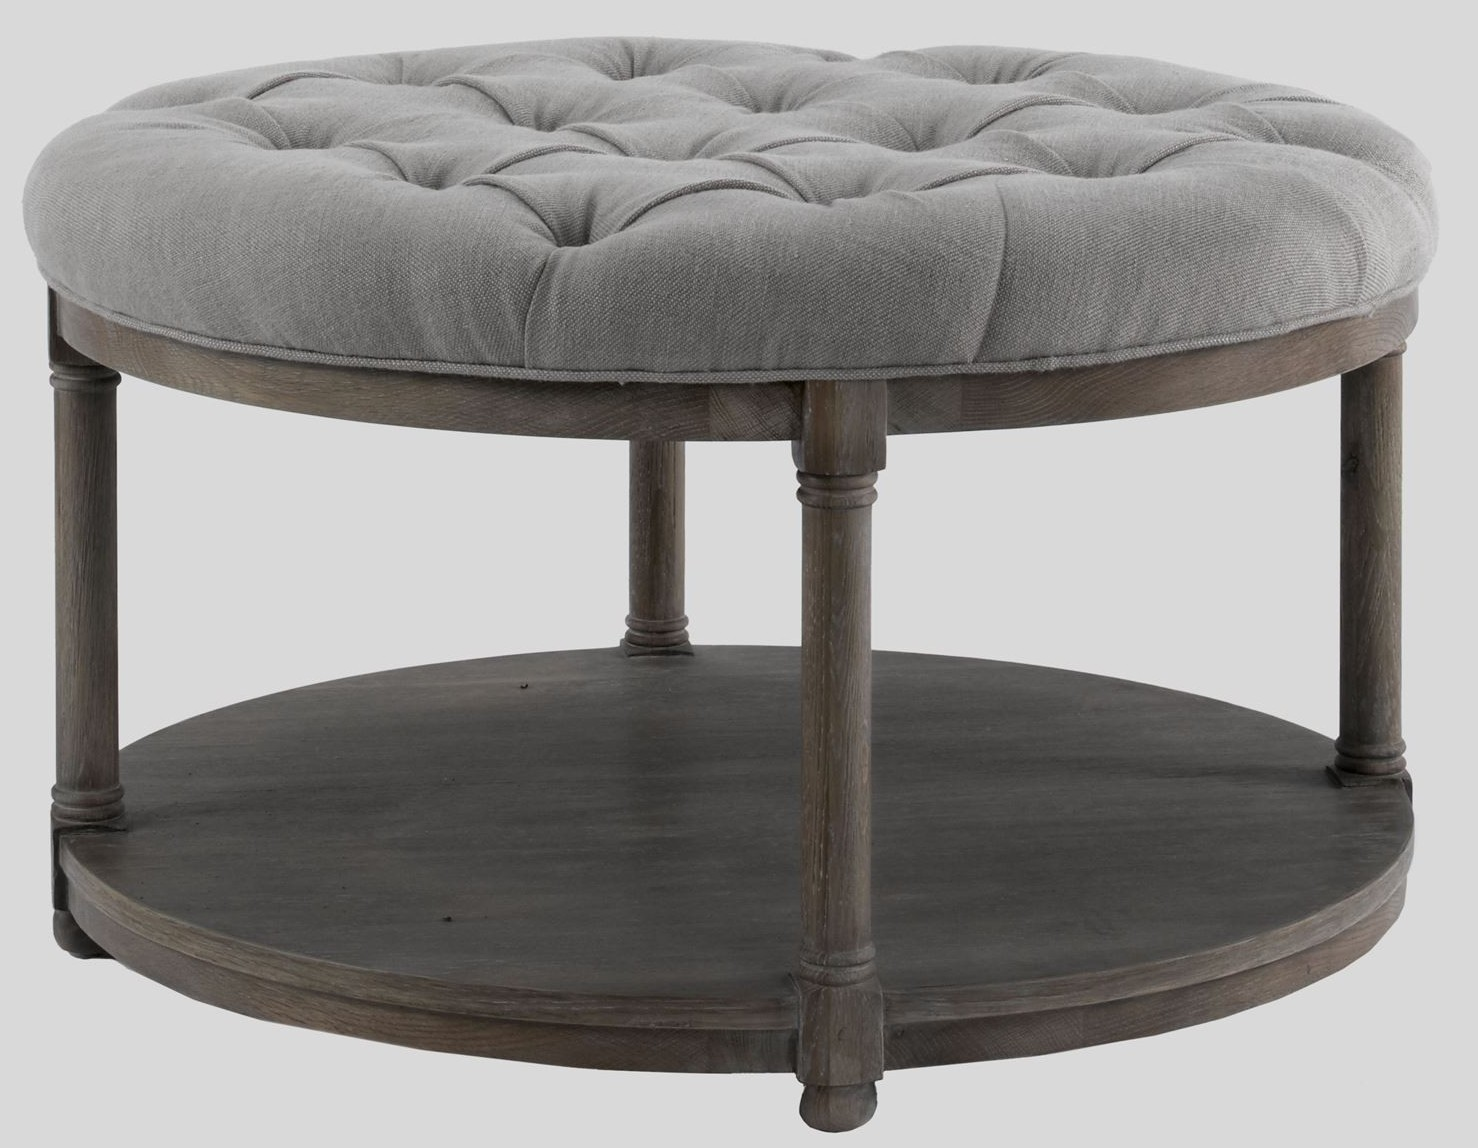 Lorraine Round Upholstered Cocktail Table From Brownstone Lr500 Coleman Furniture